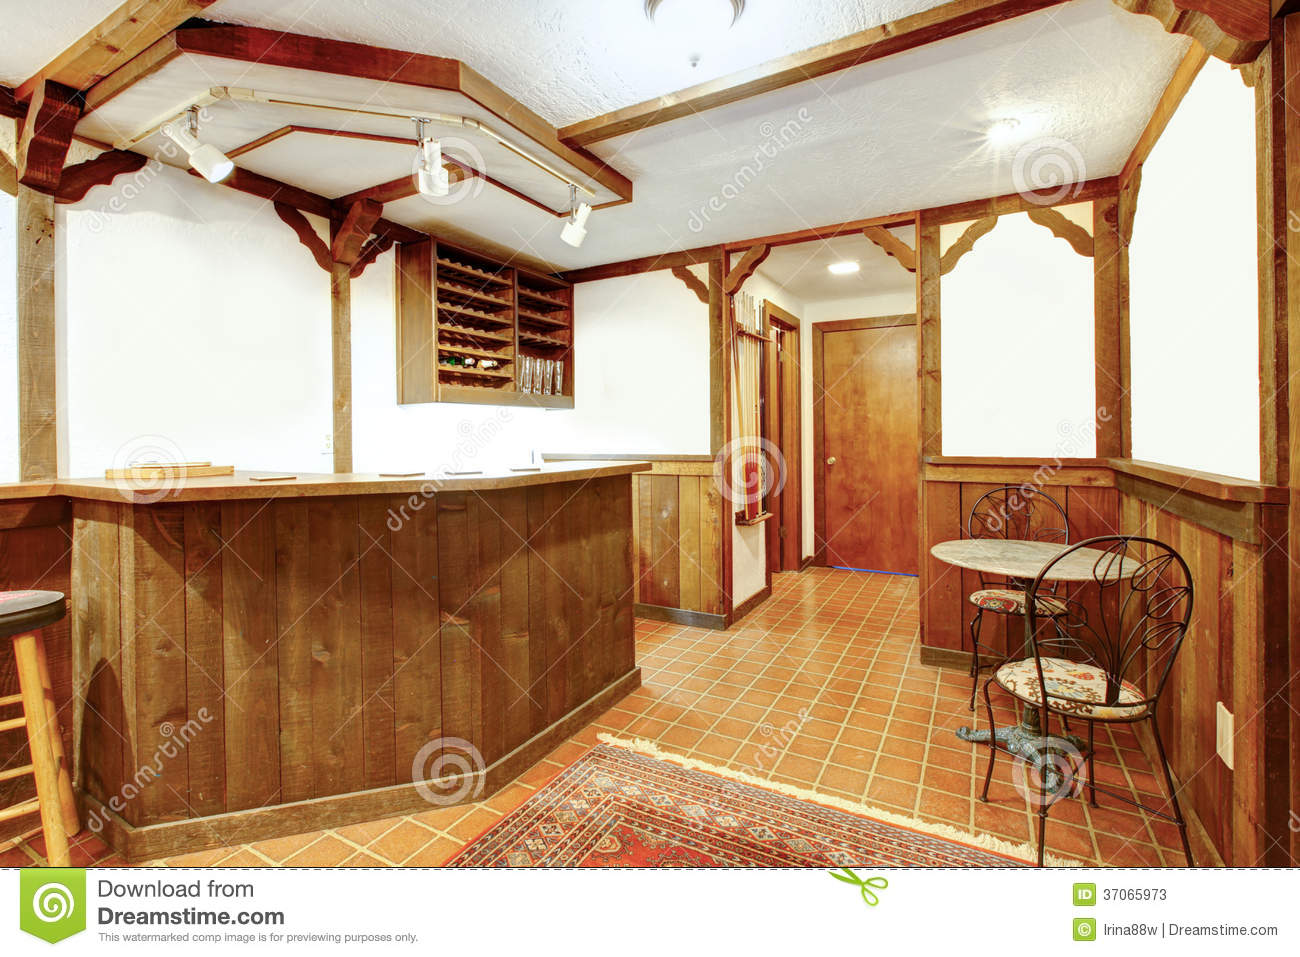 Rustic Wooden Bar Room Stock Photos Image 37065973